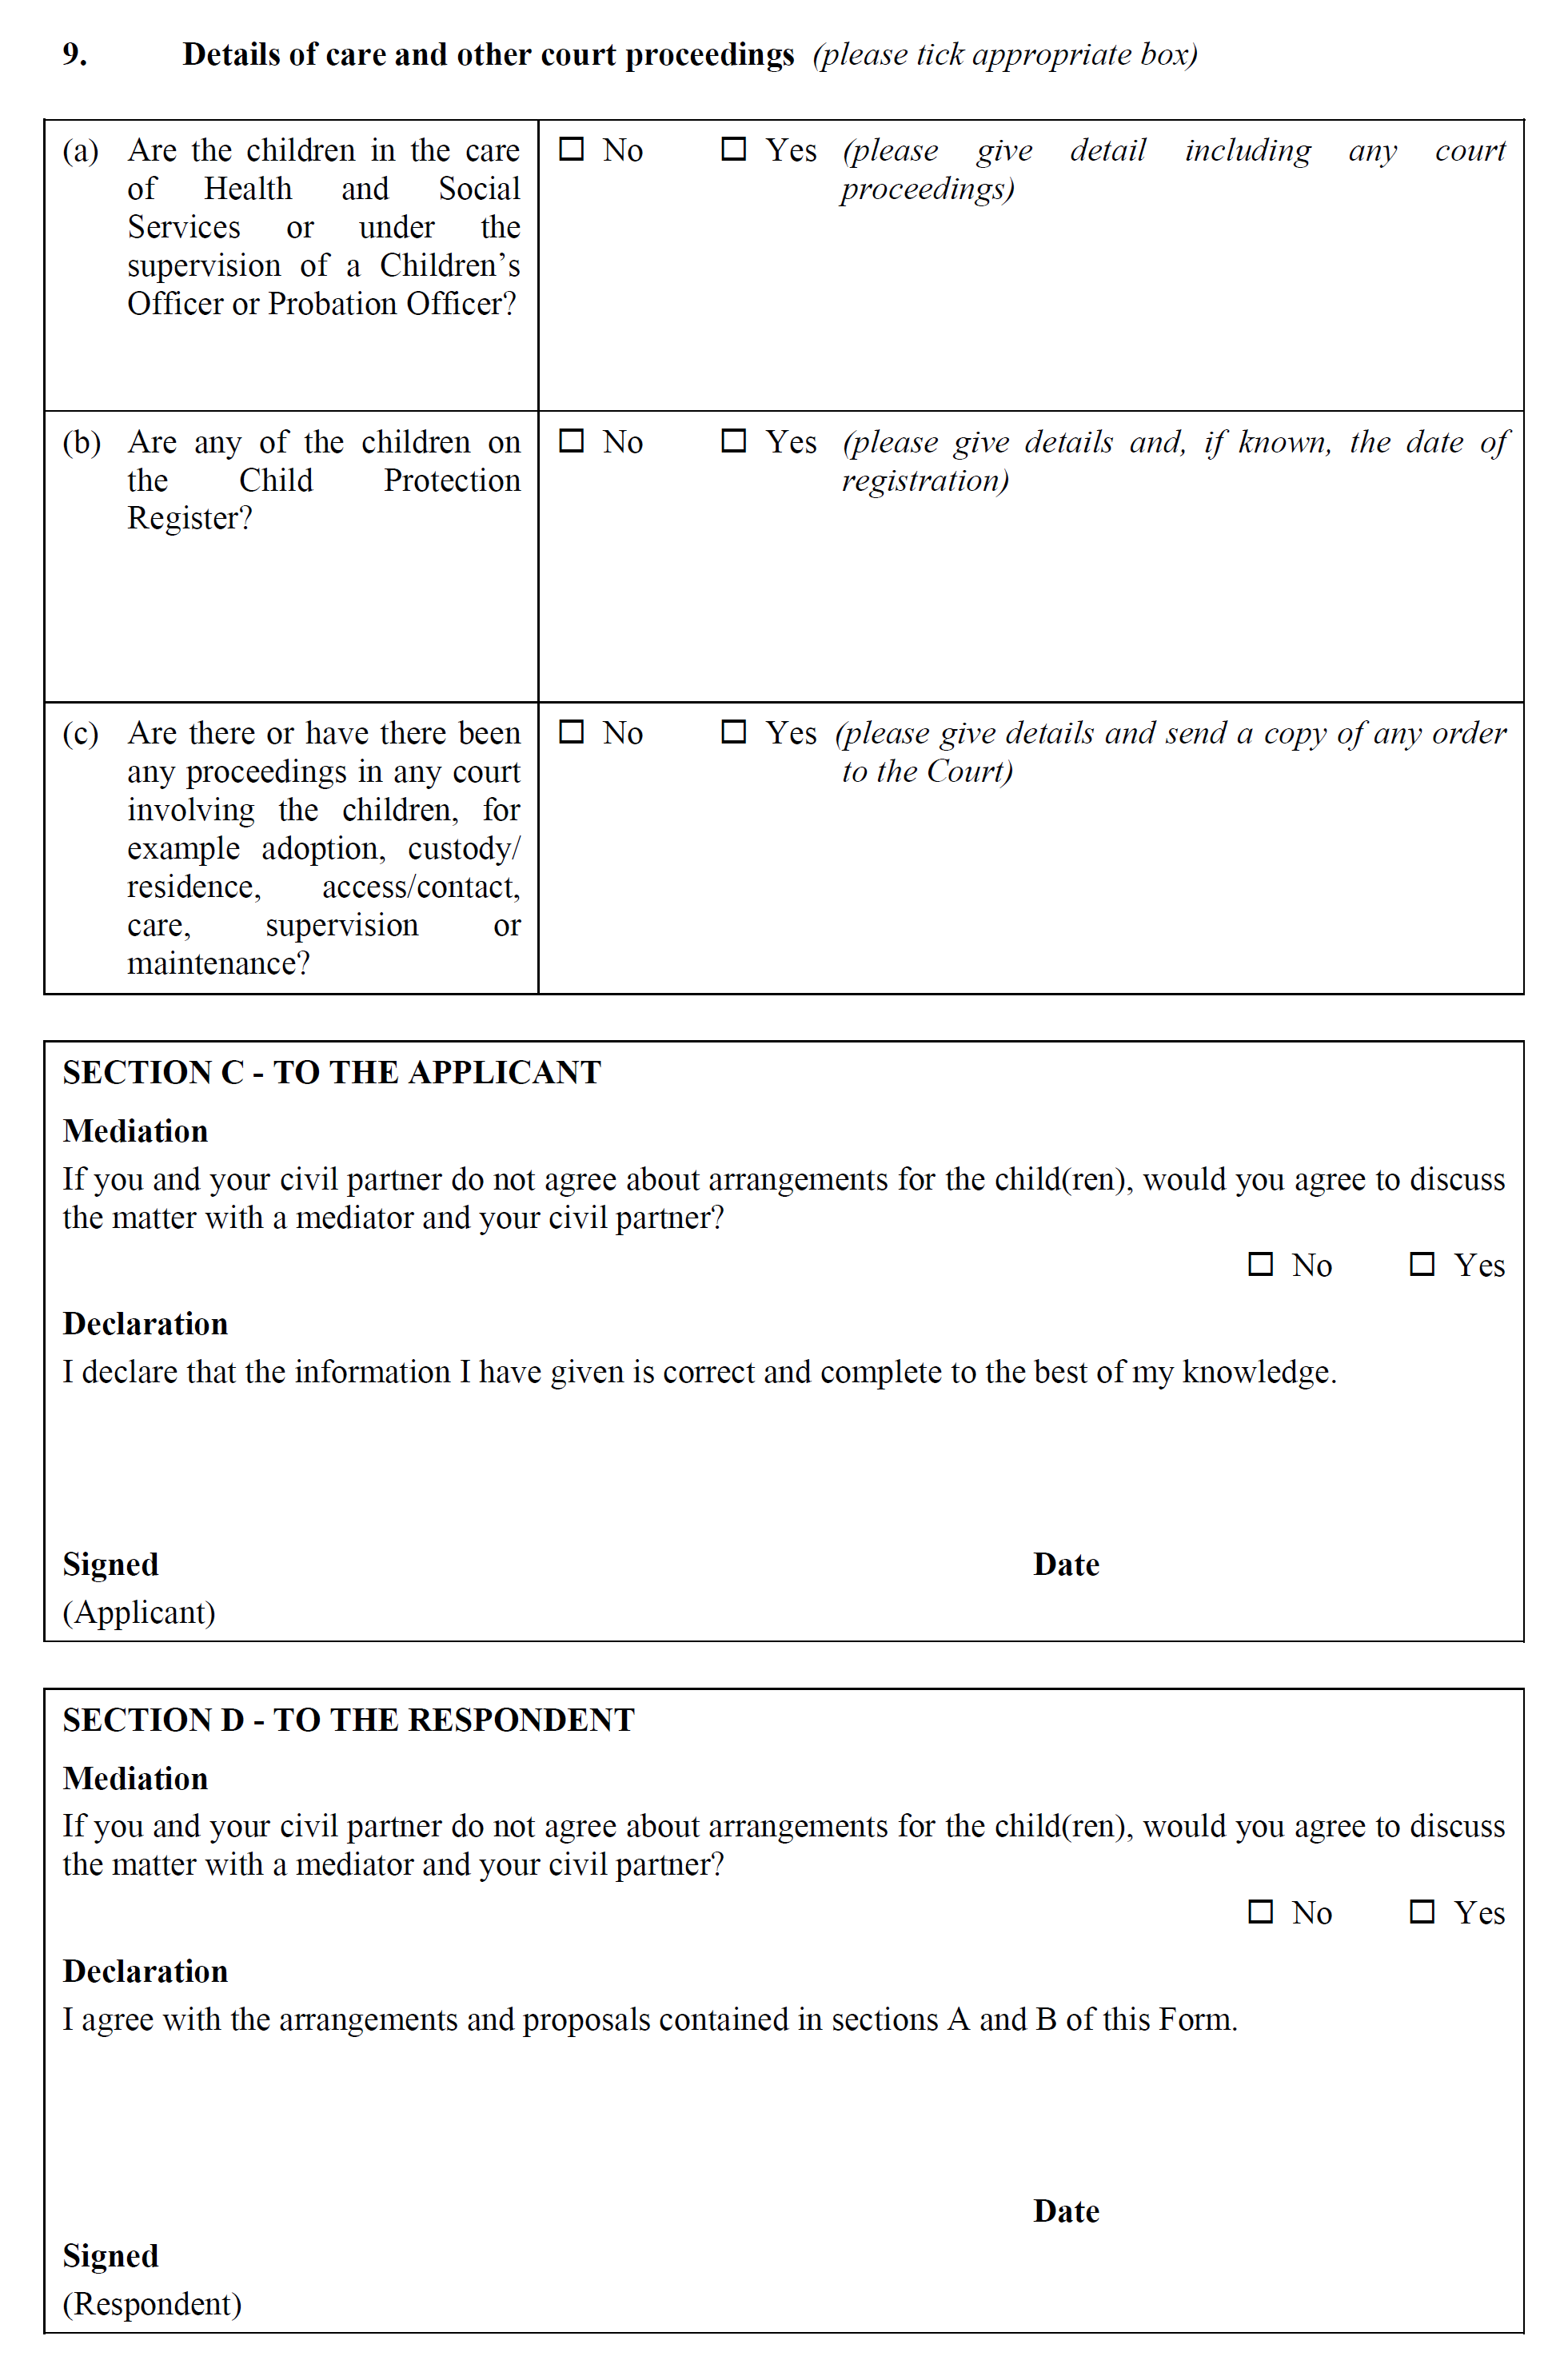 Form CP5 - Statement as to arrangements for children - continued